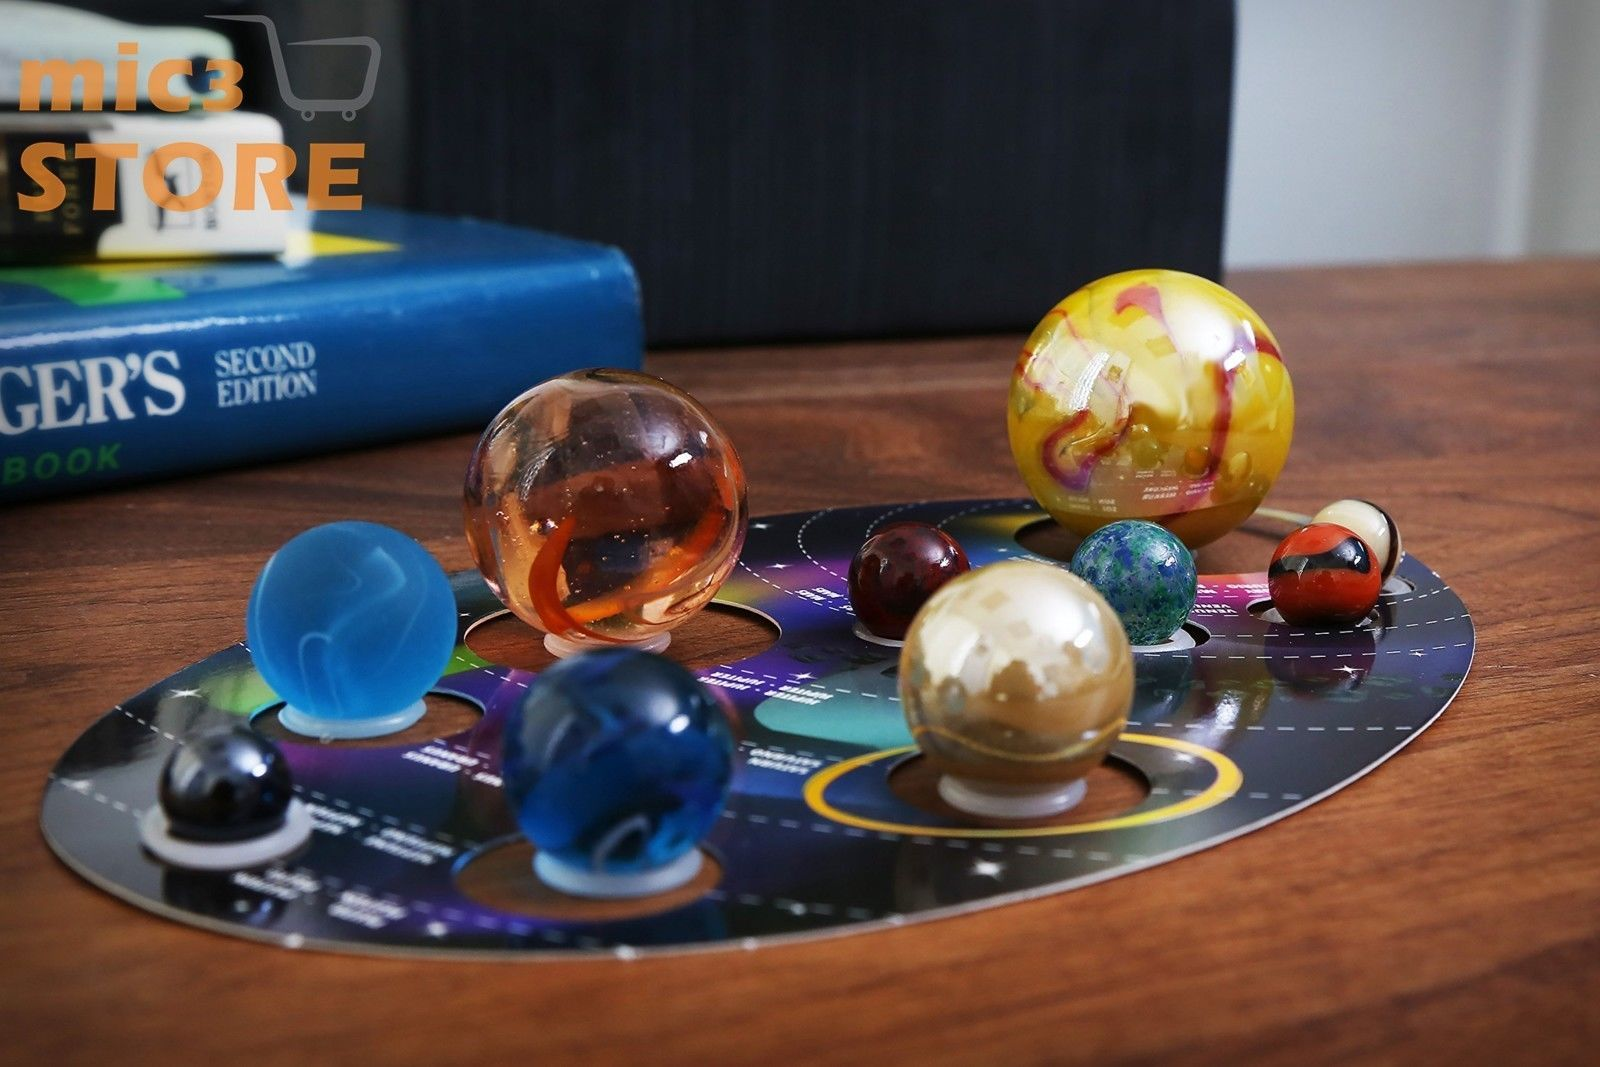 Marble Set Solar System Christmas Gift For Kids Toys Game Children 5 Snap Circuits Kit Education Toy Science Hobby New Ebay Year And Up